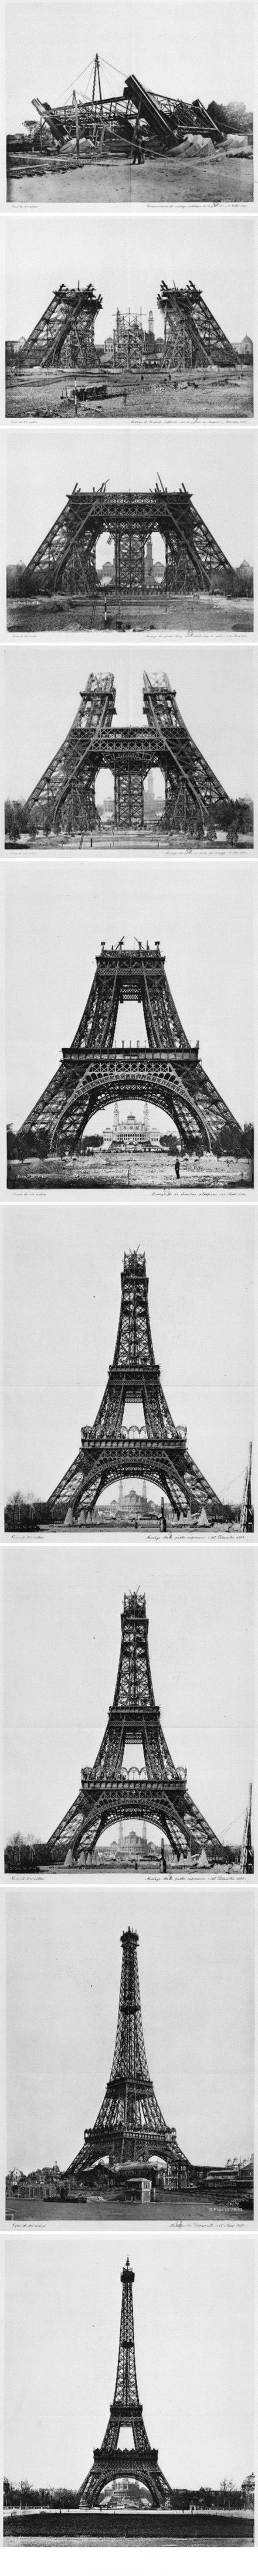 The construction of the Eiffel Tower